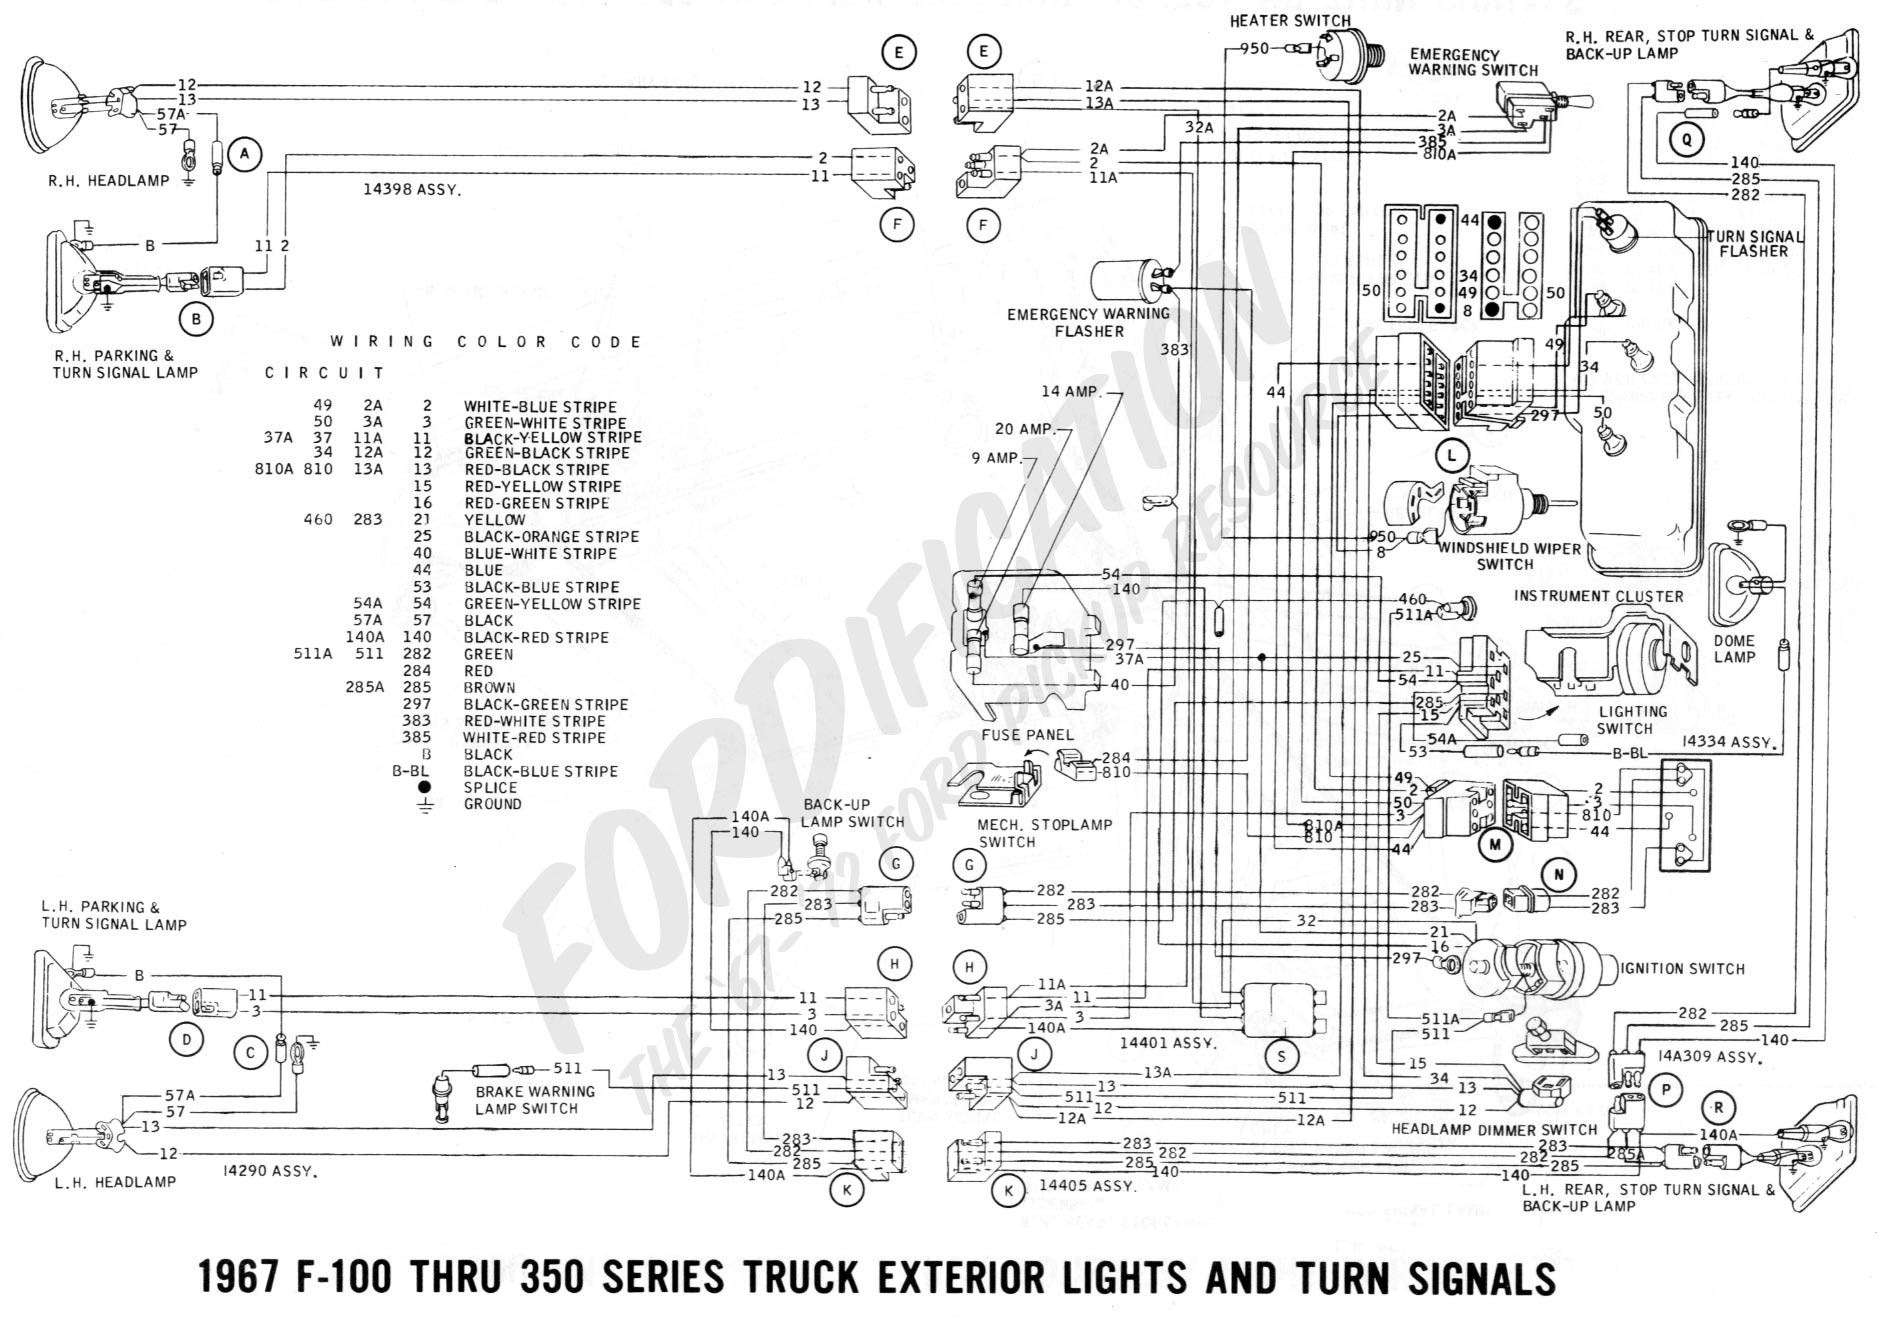 Truck Wiring Diagrams Free ford Truck Wiring Diagrams Free Citruscyclecenter Of Truck Wiring Diagrams Free